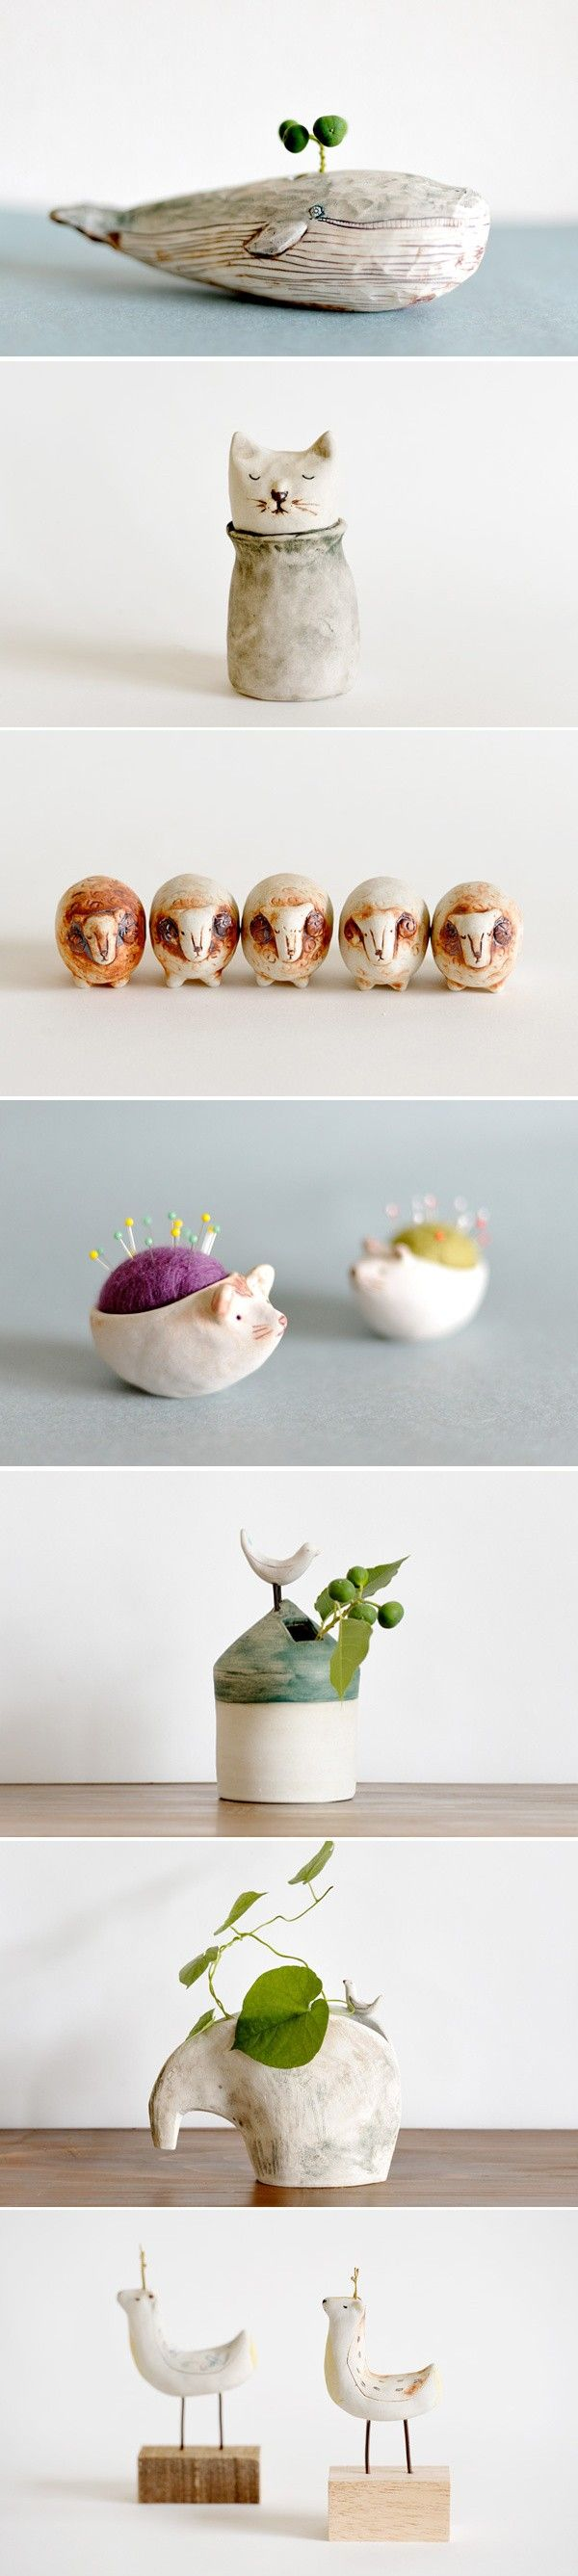 couple good ideas here, make clay sculpture for vase, or pincushion with felted inside More